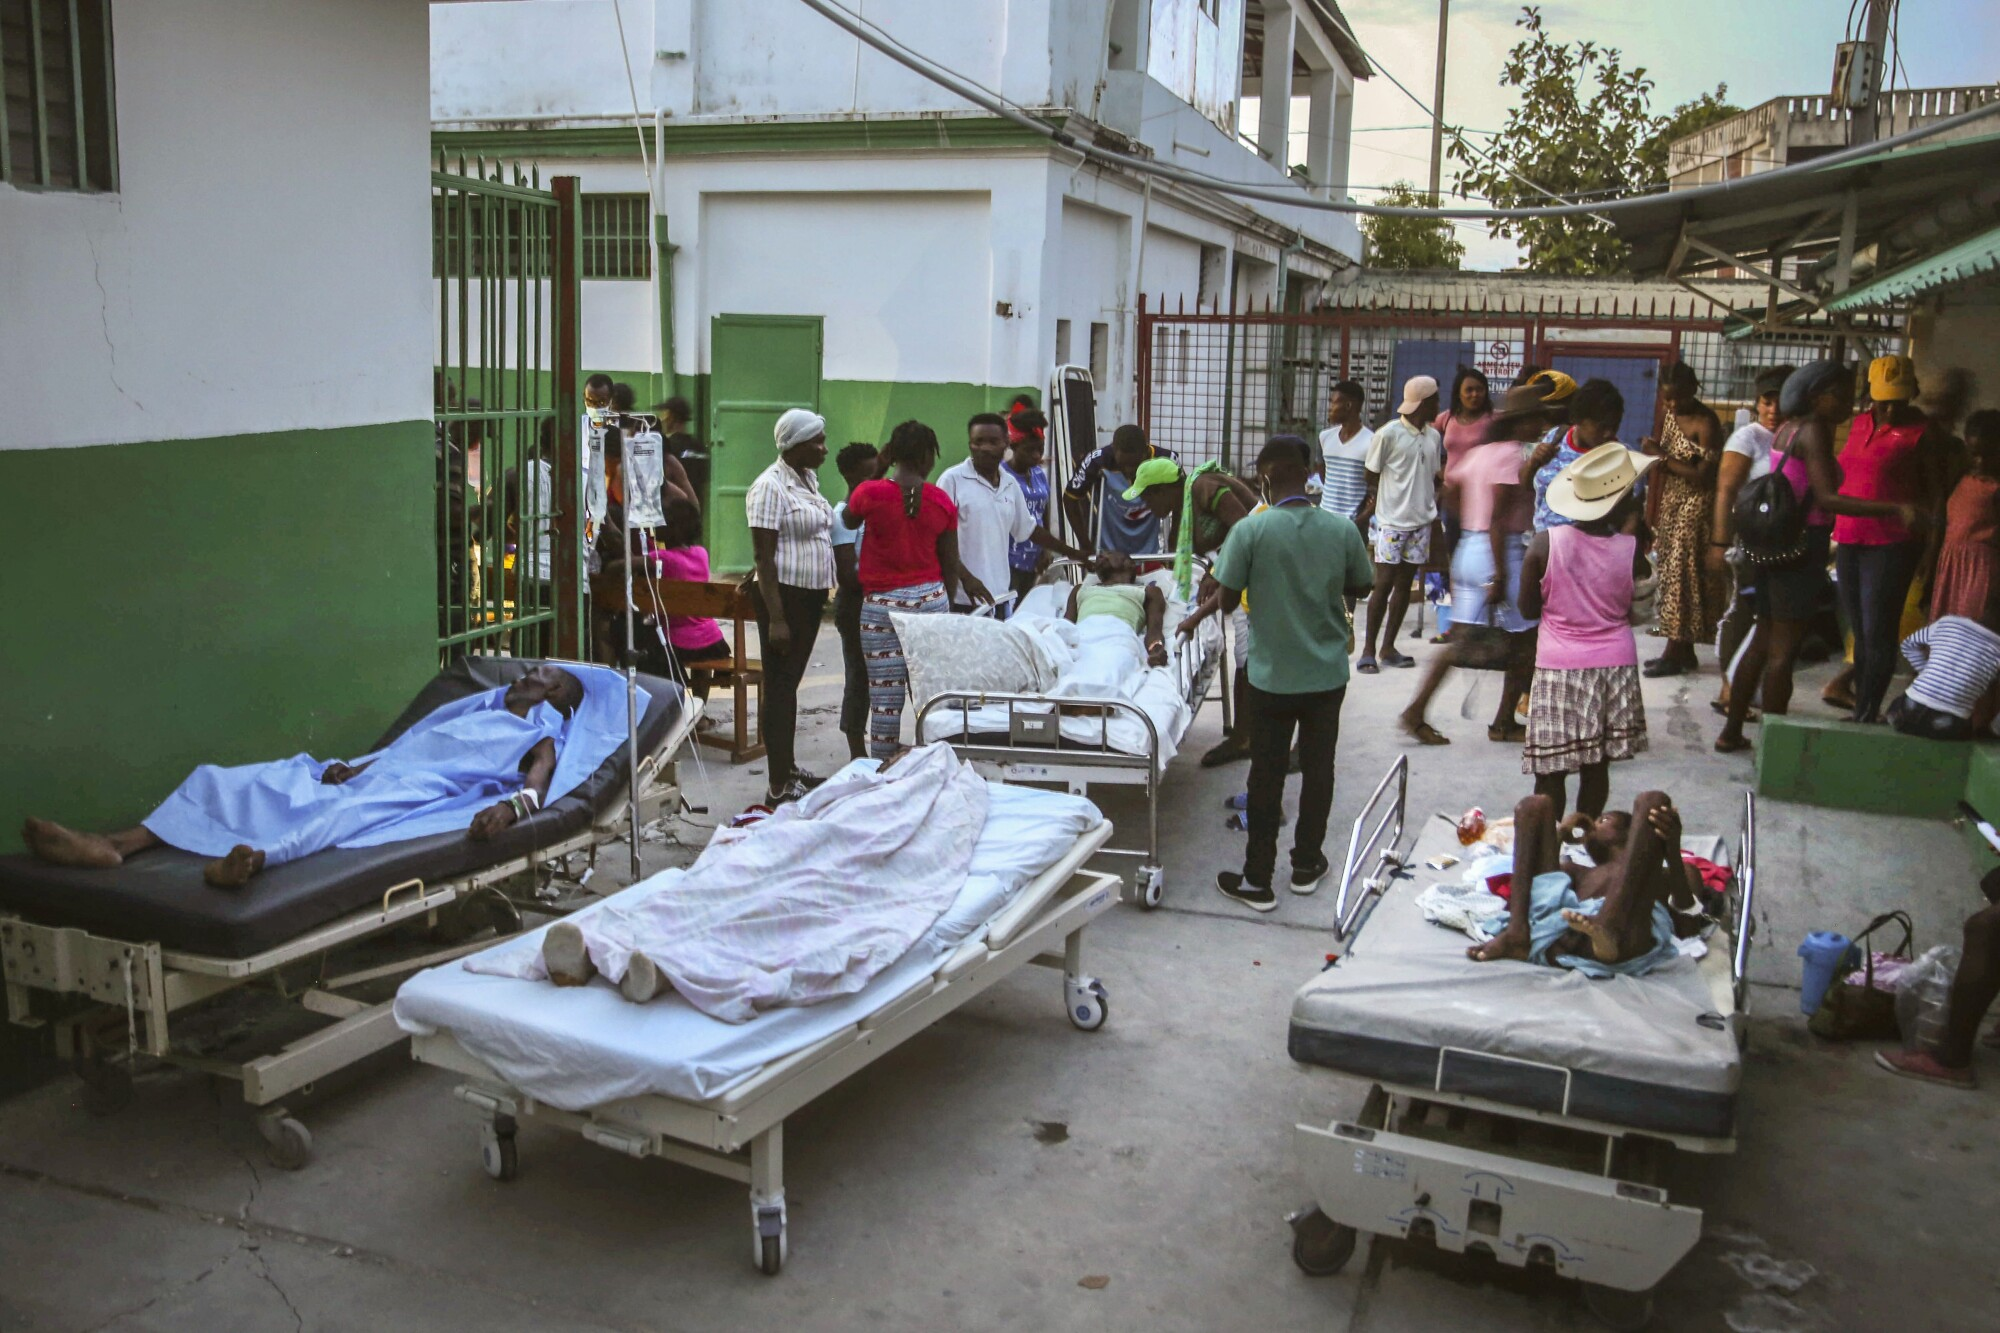 People injured during the earthquake are treated in the hospital while lying in beds.